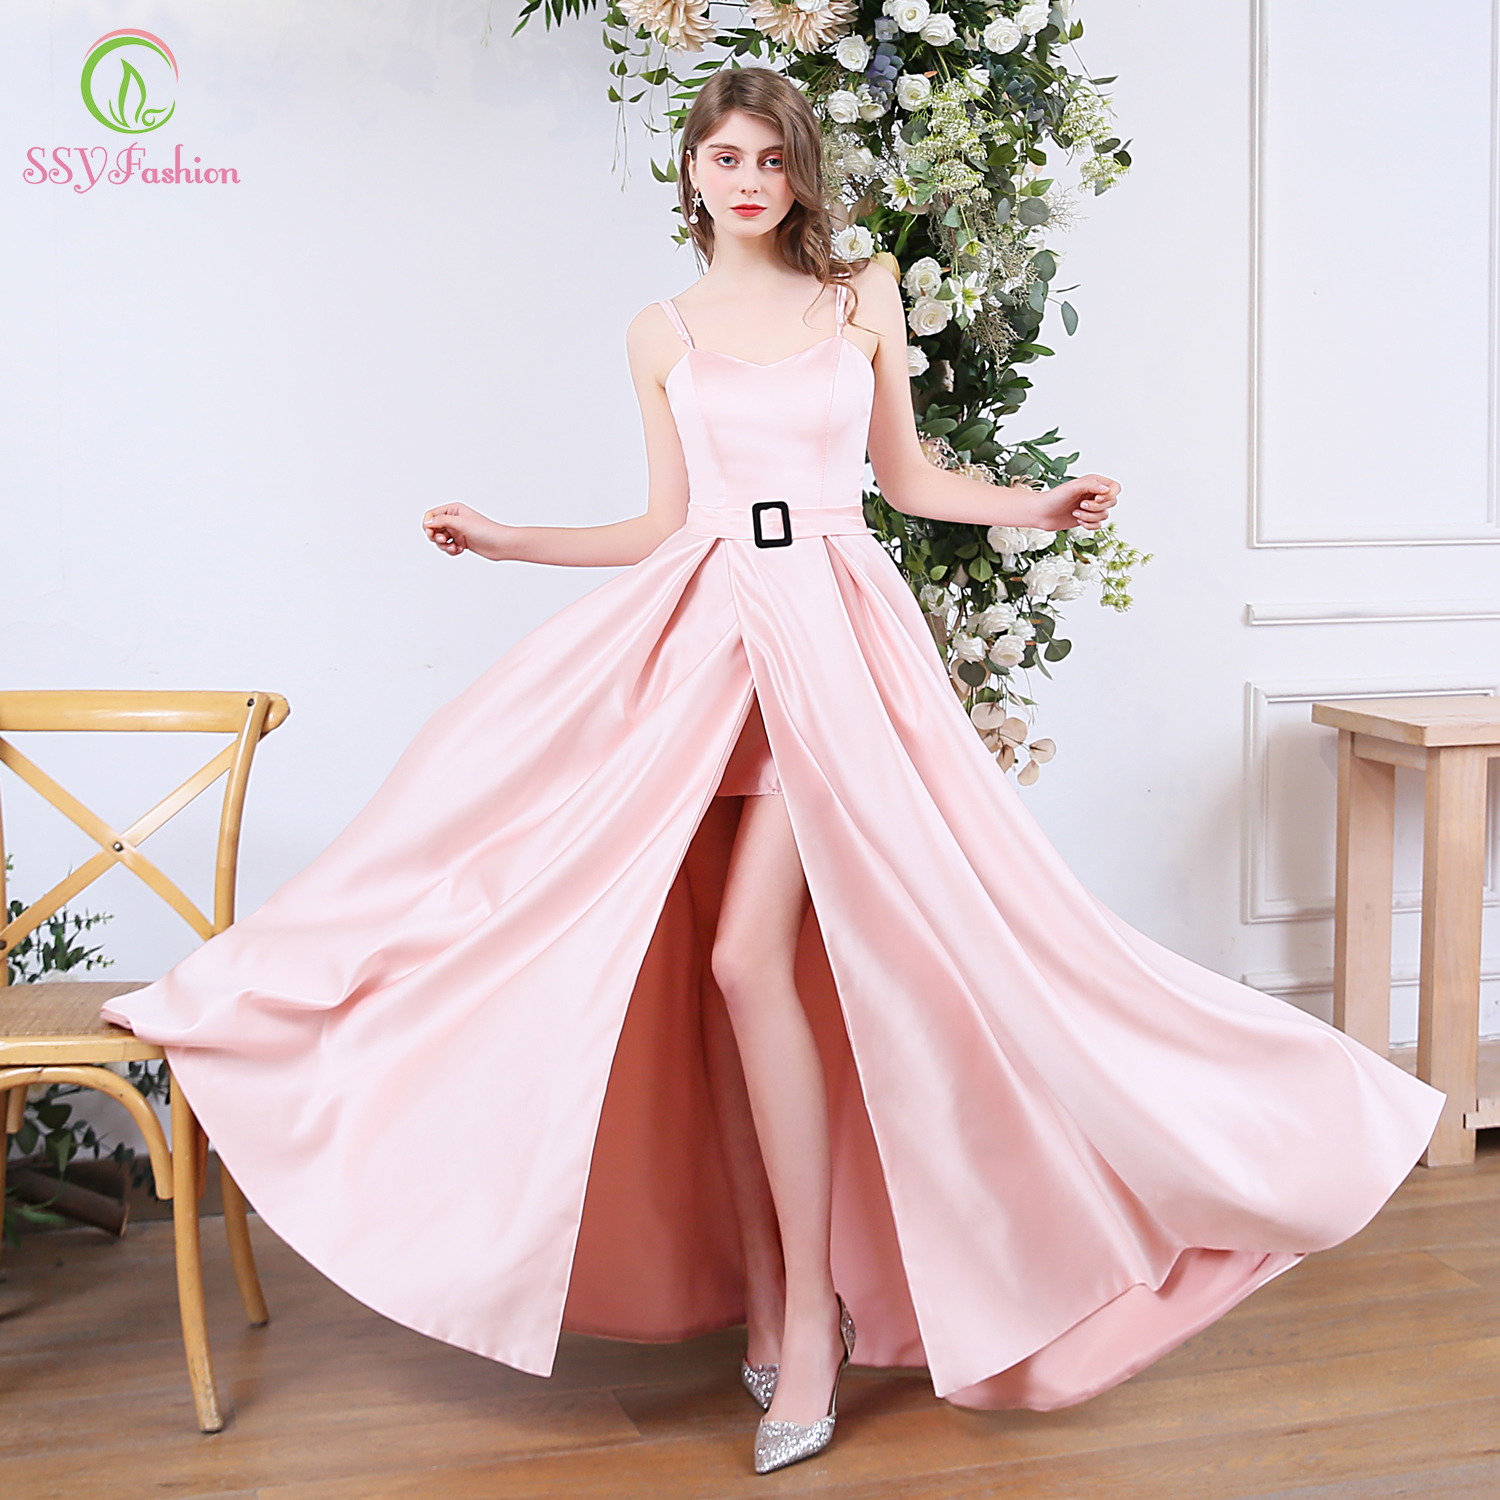 SSYFashion New Sweet Pink Satin Evening Dress Sexy Sleeveless Backless Simple High-split Long Formal Prom Gowns Vestido De Noche